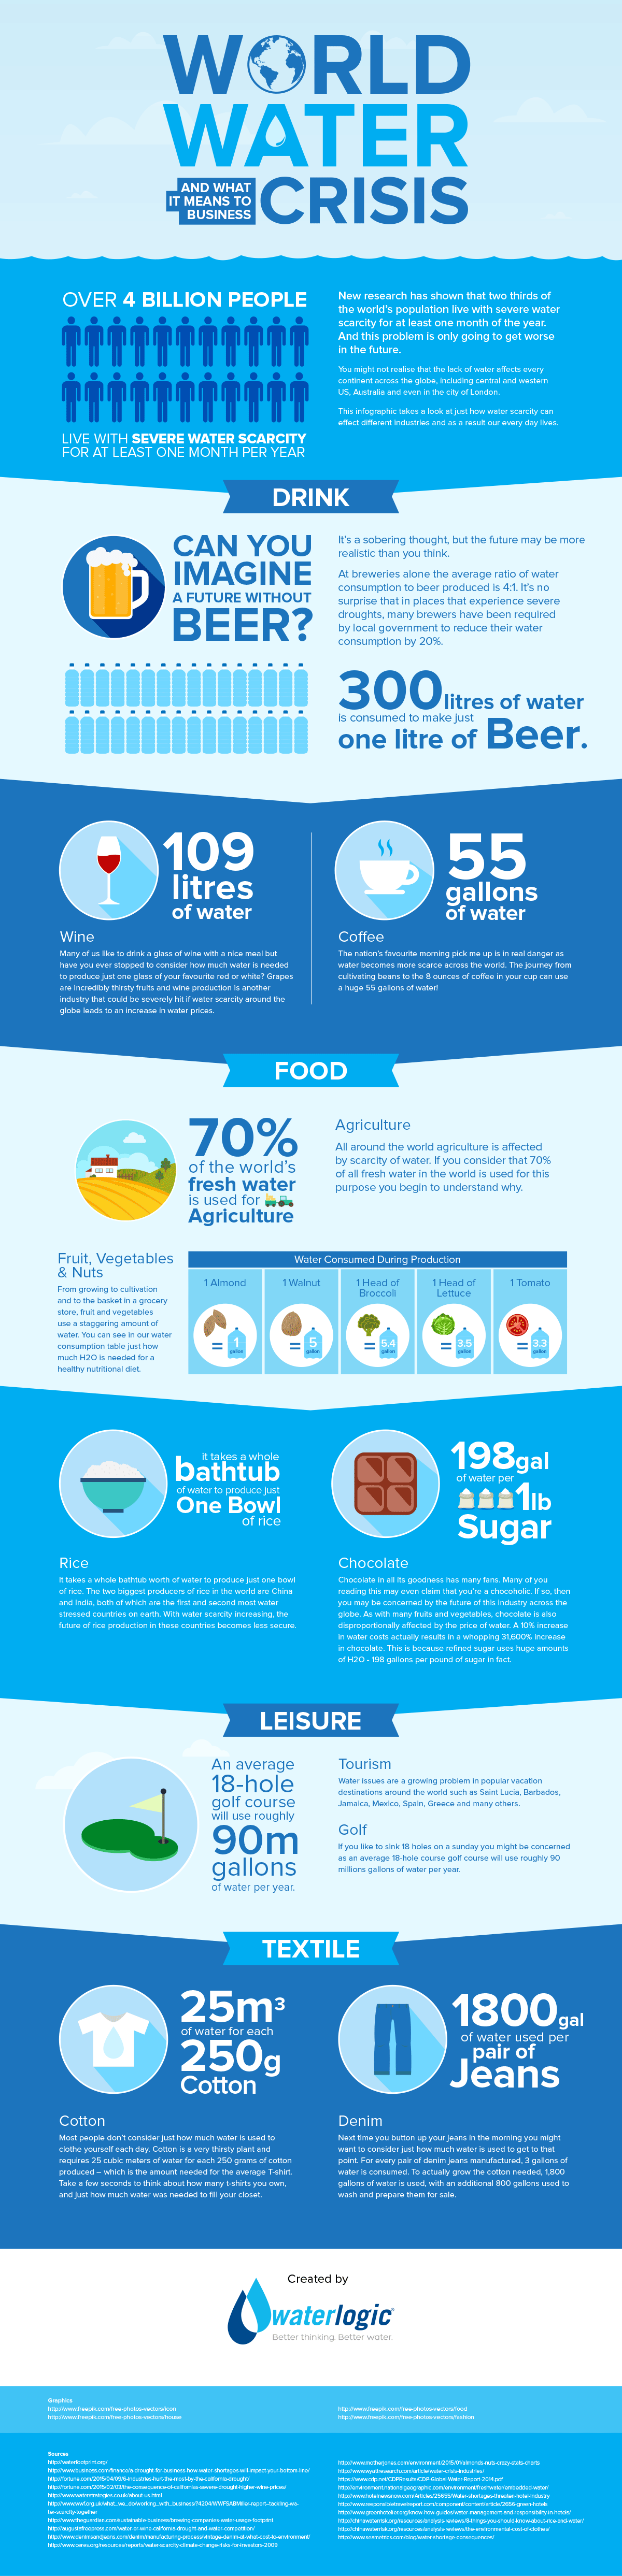 WorldWaterDay_Infographic_Waterlogic_1